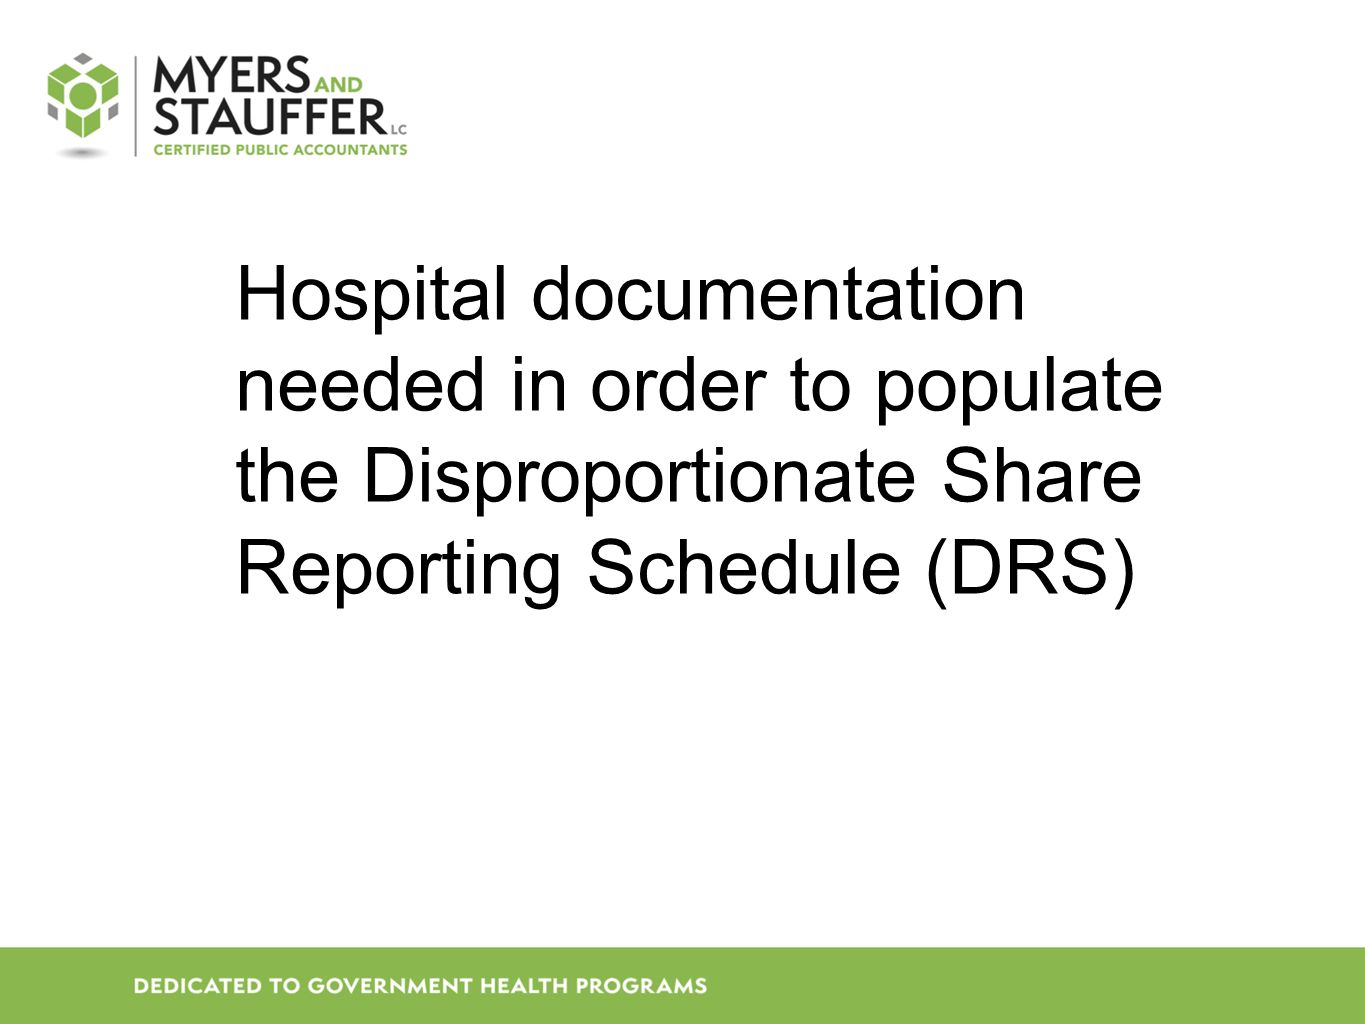 PROVIDER PAYER/INSURANCE CODE LISTING WITH DESCRIPTIONS Request list #9 MSP rate year Listing needed to determine what codes are self pay, insurance, or other payers.